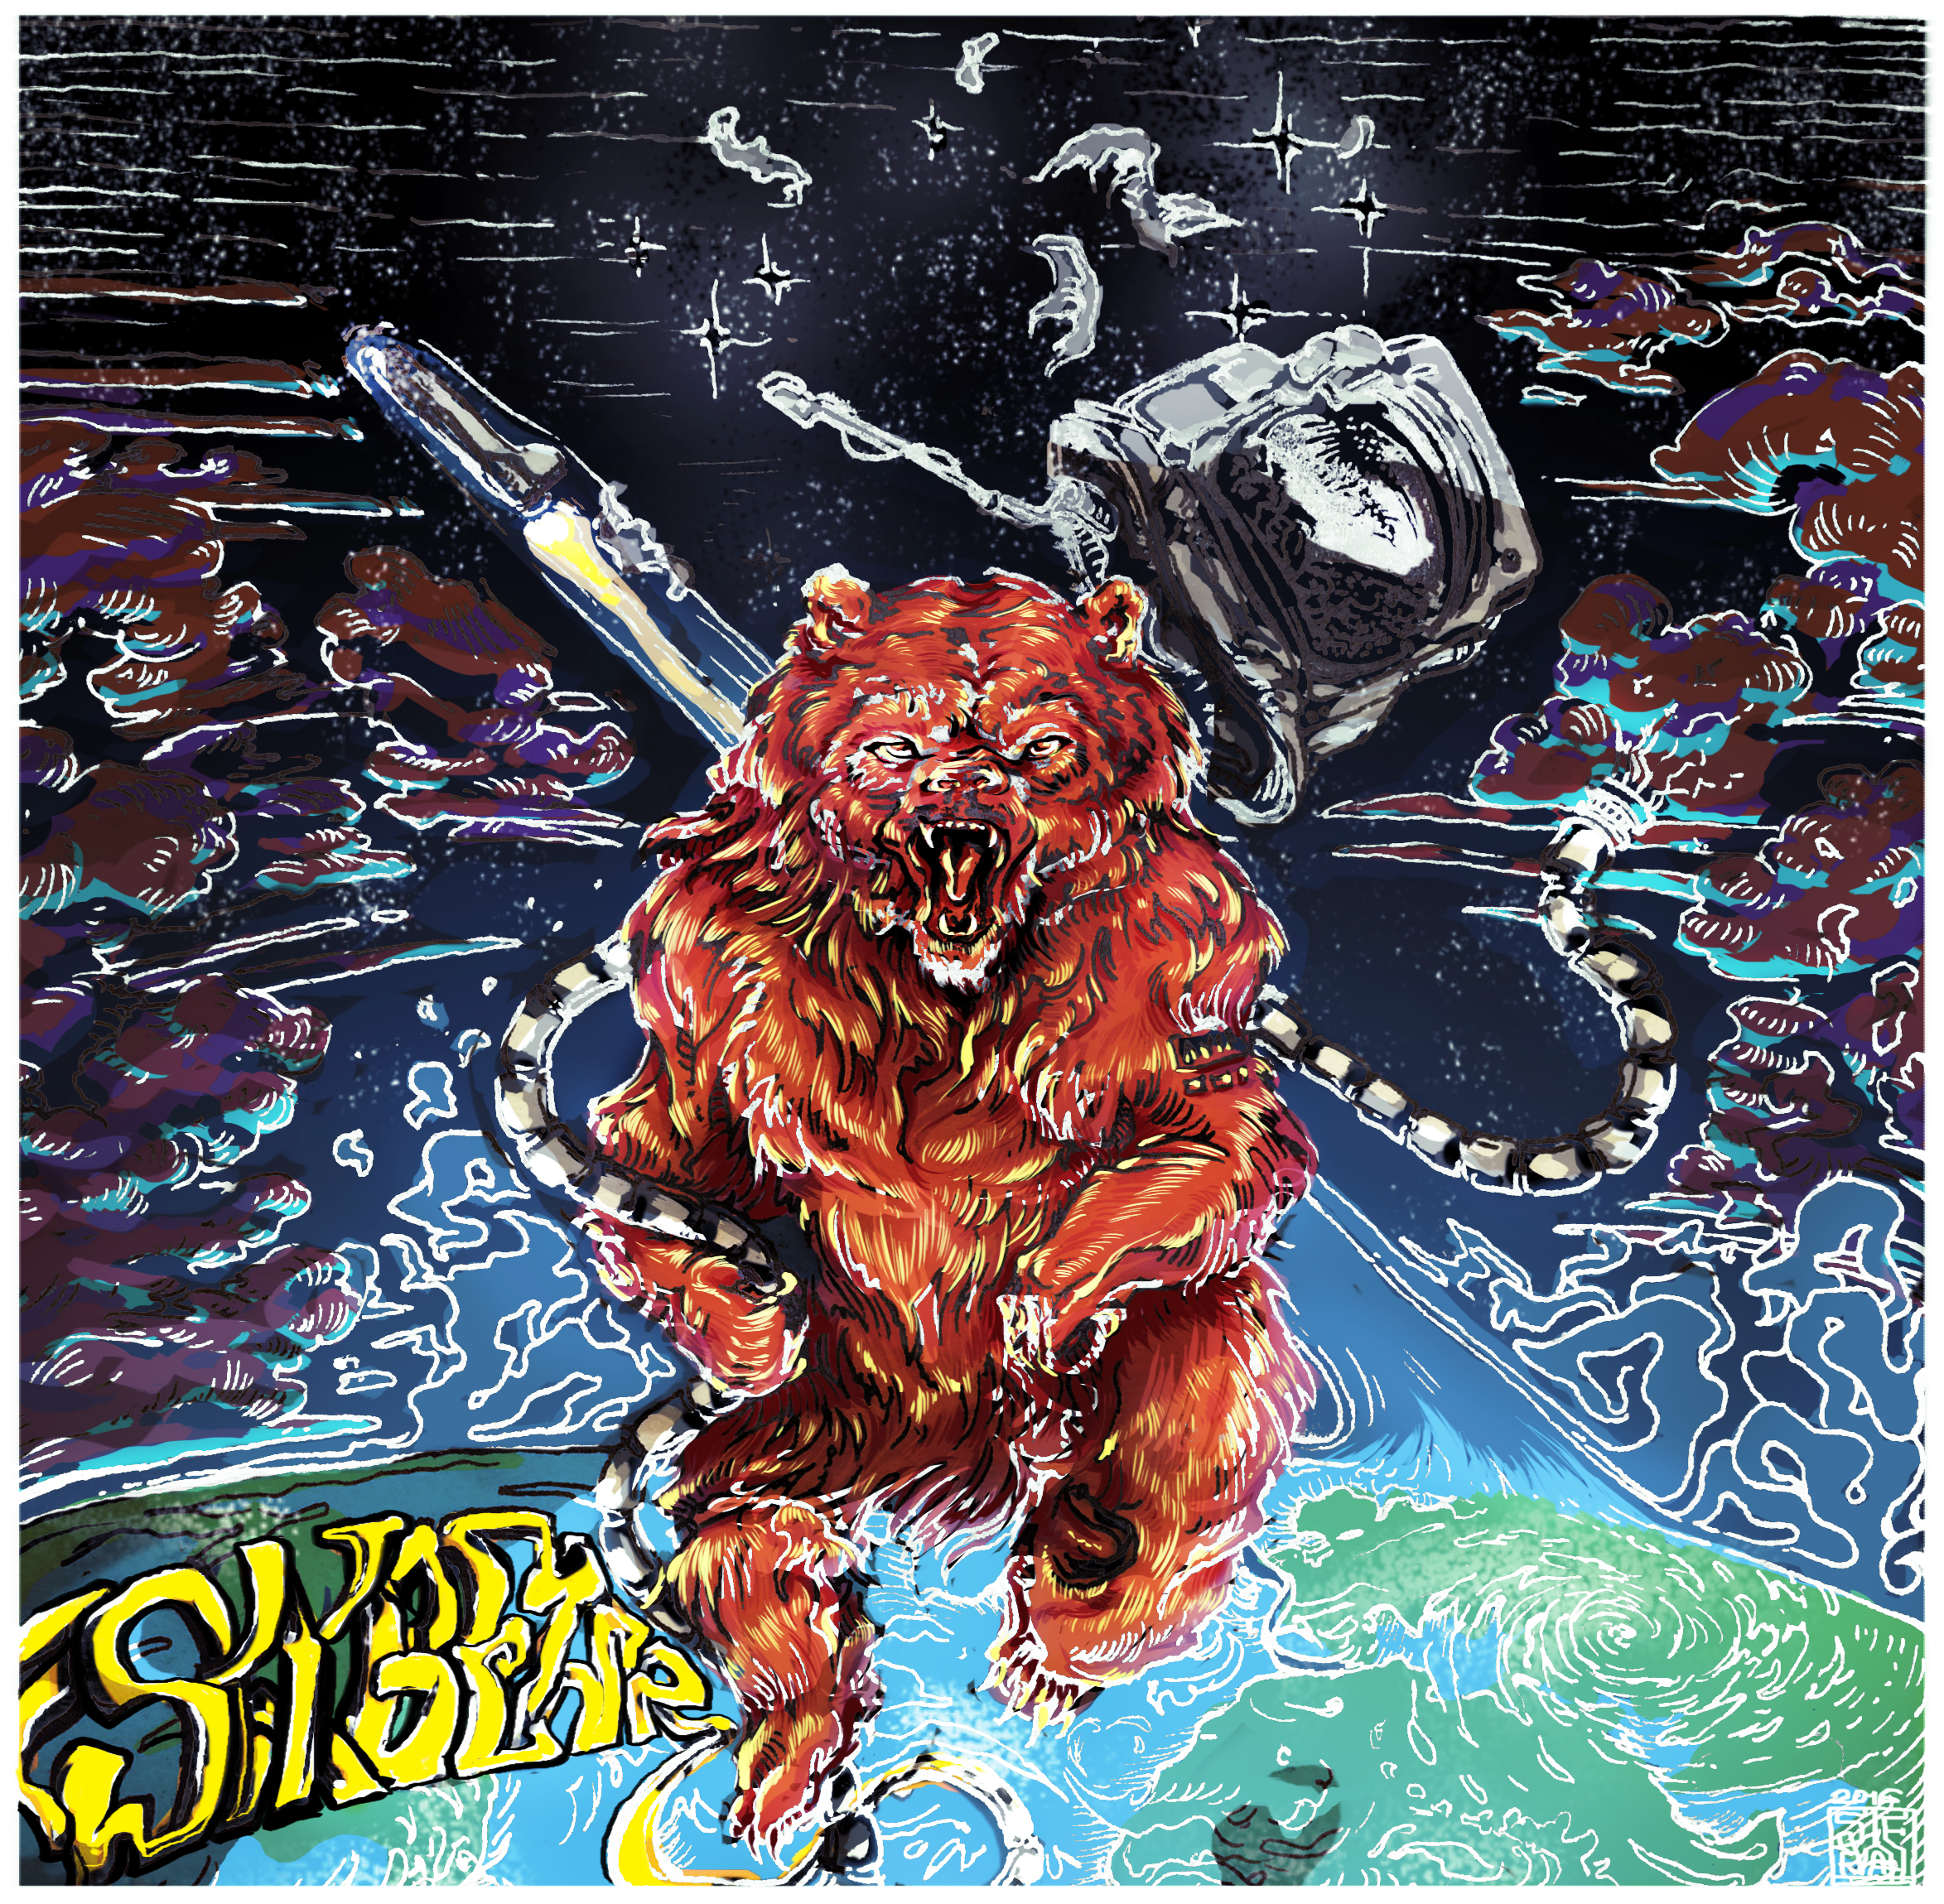 Skybear Album Cover copy copy.png